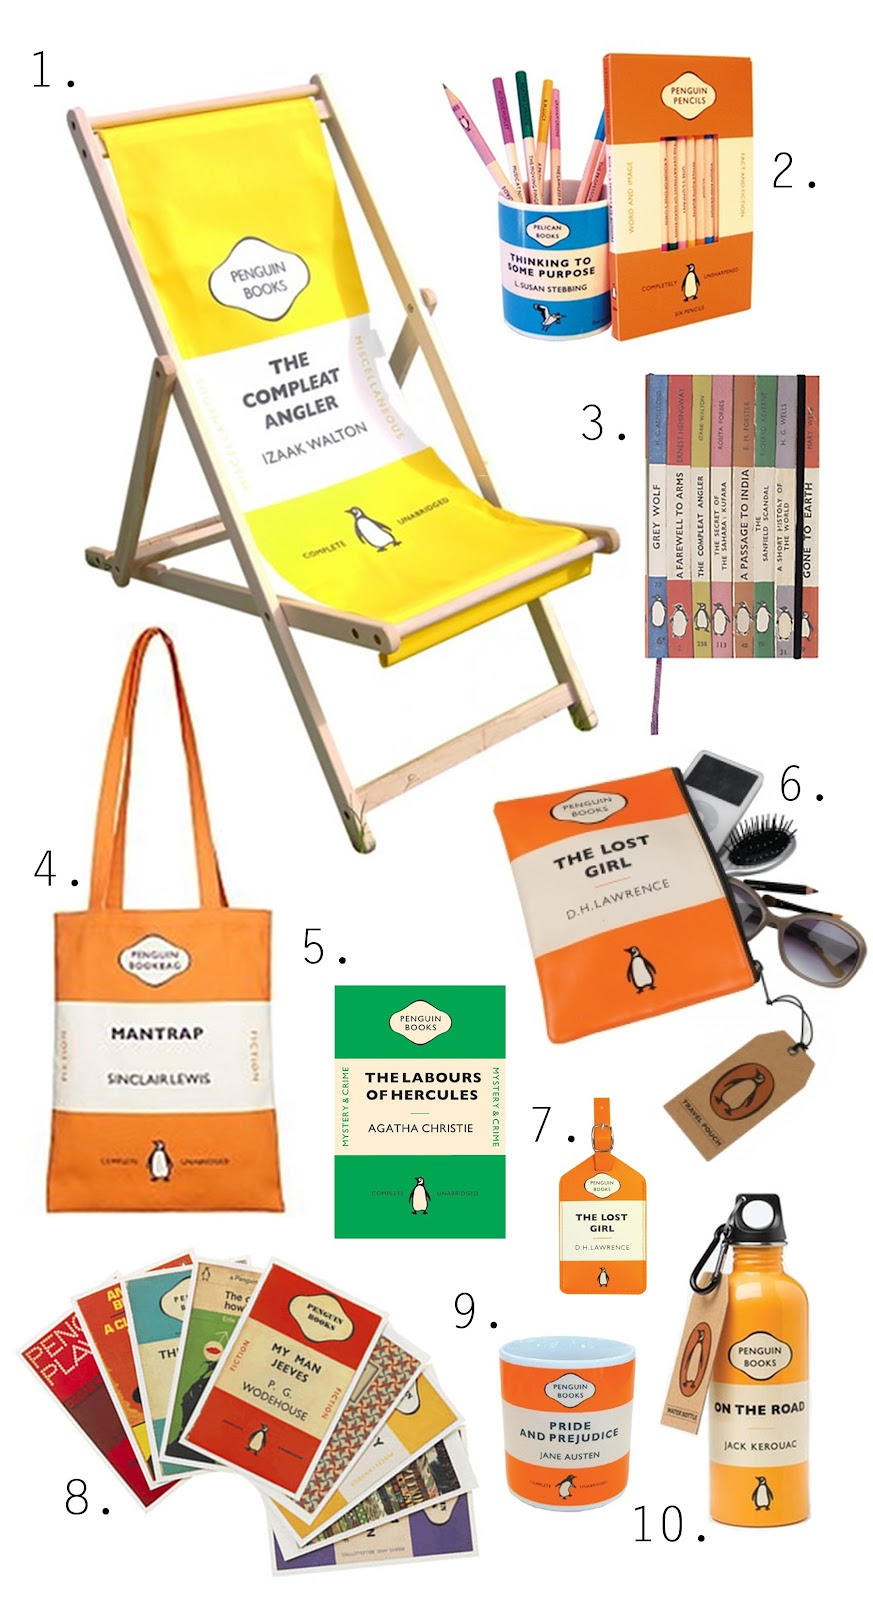 Penguin Book Cover Deck Chairs : Design muse penguin classics